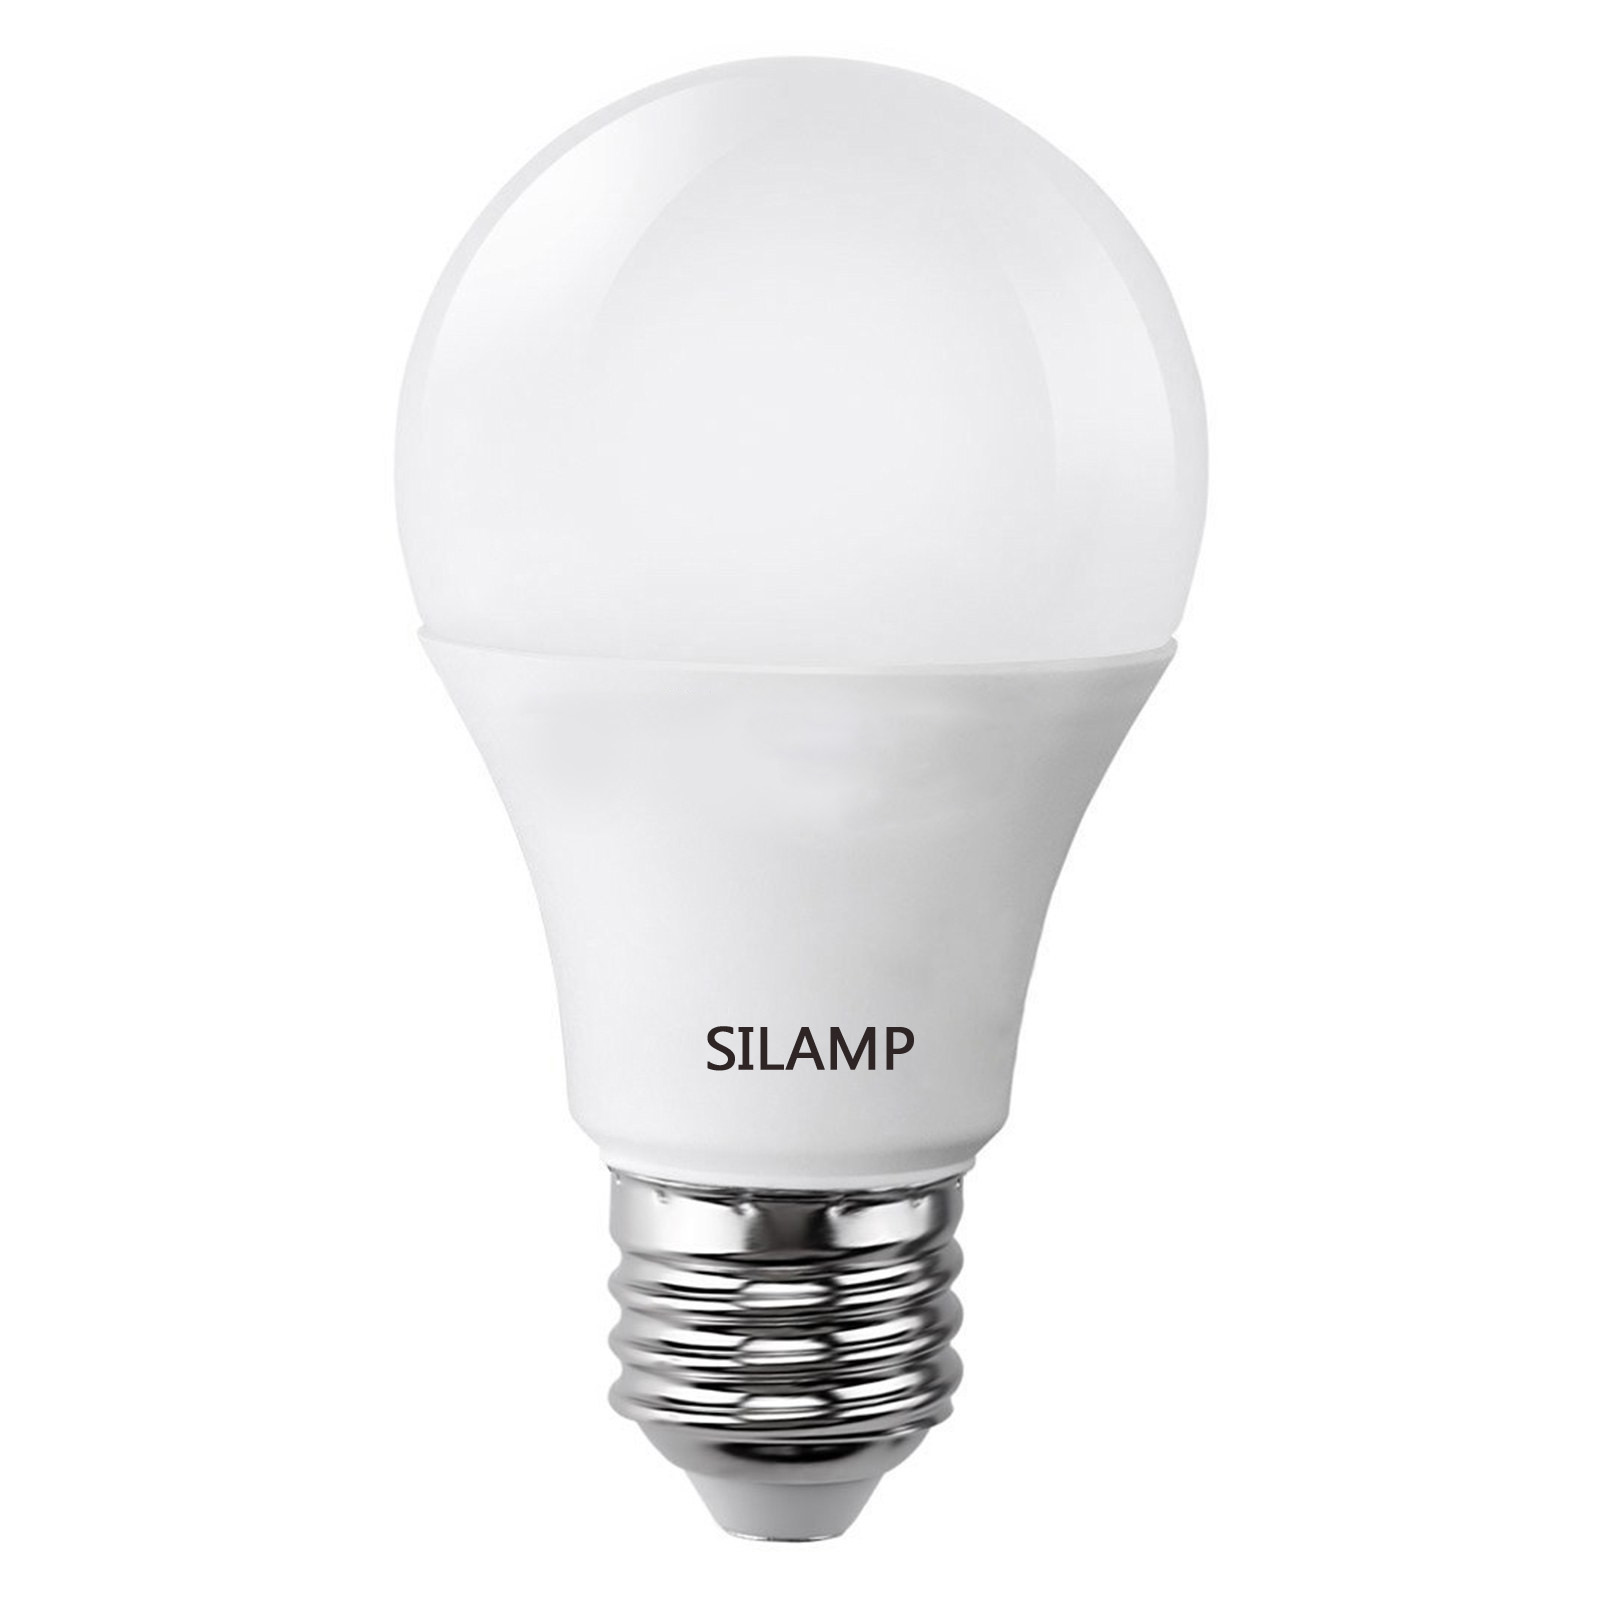 Led bulb E27 A60 9W Attack Big Screw Brand name Silamp Compact Lamp